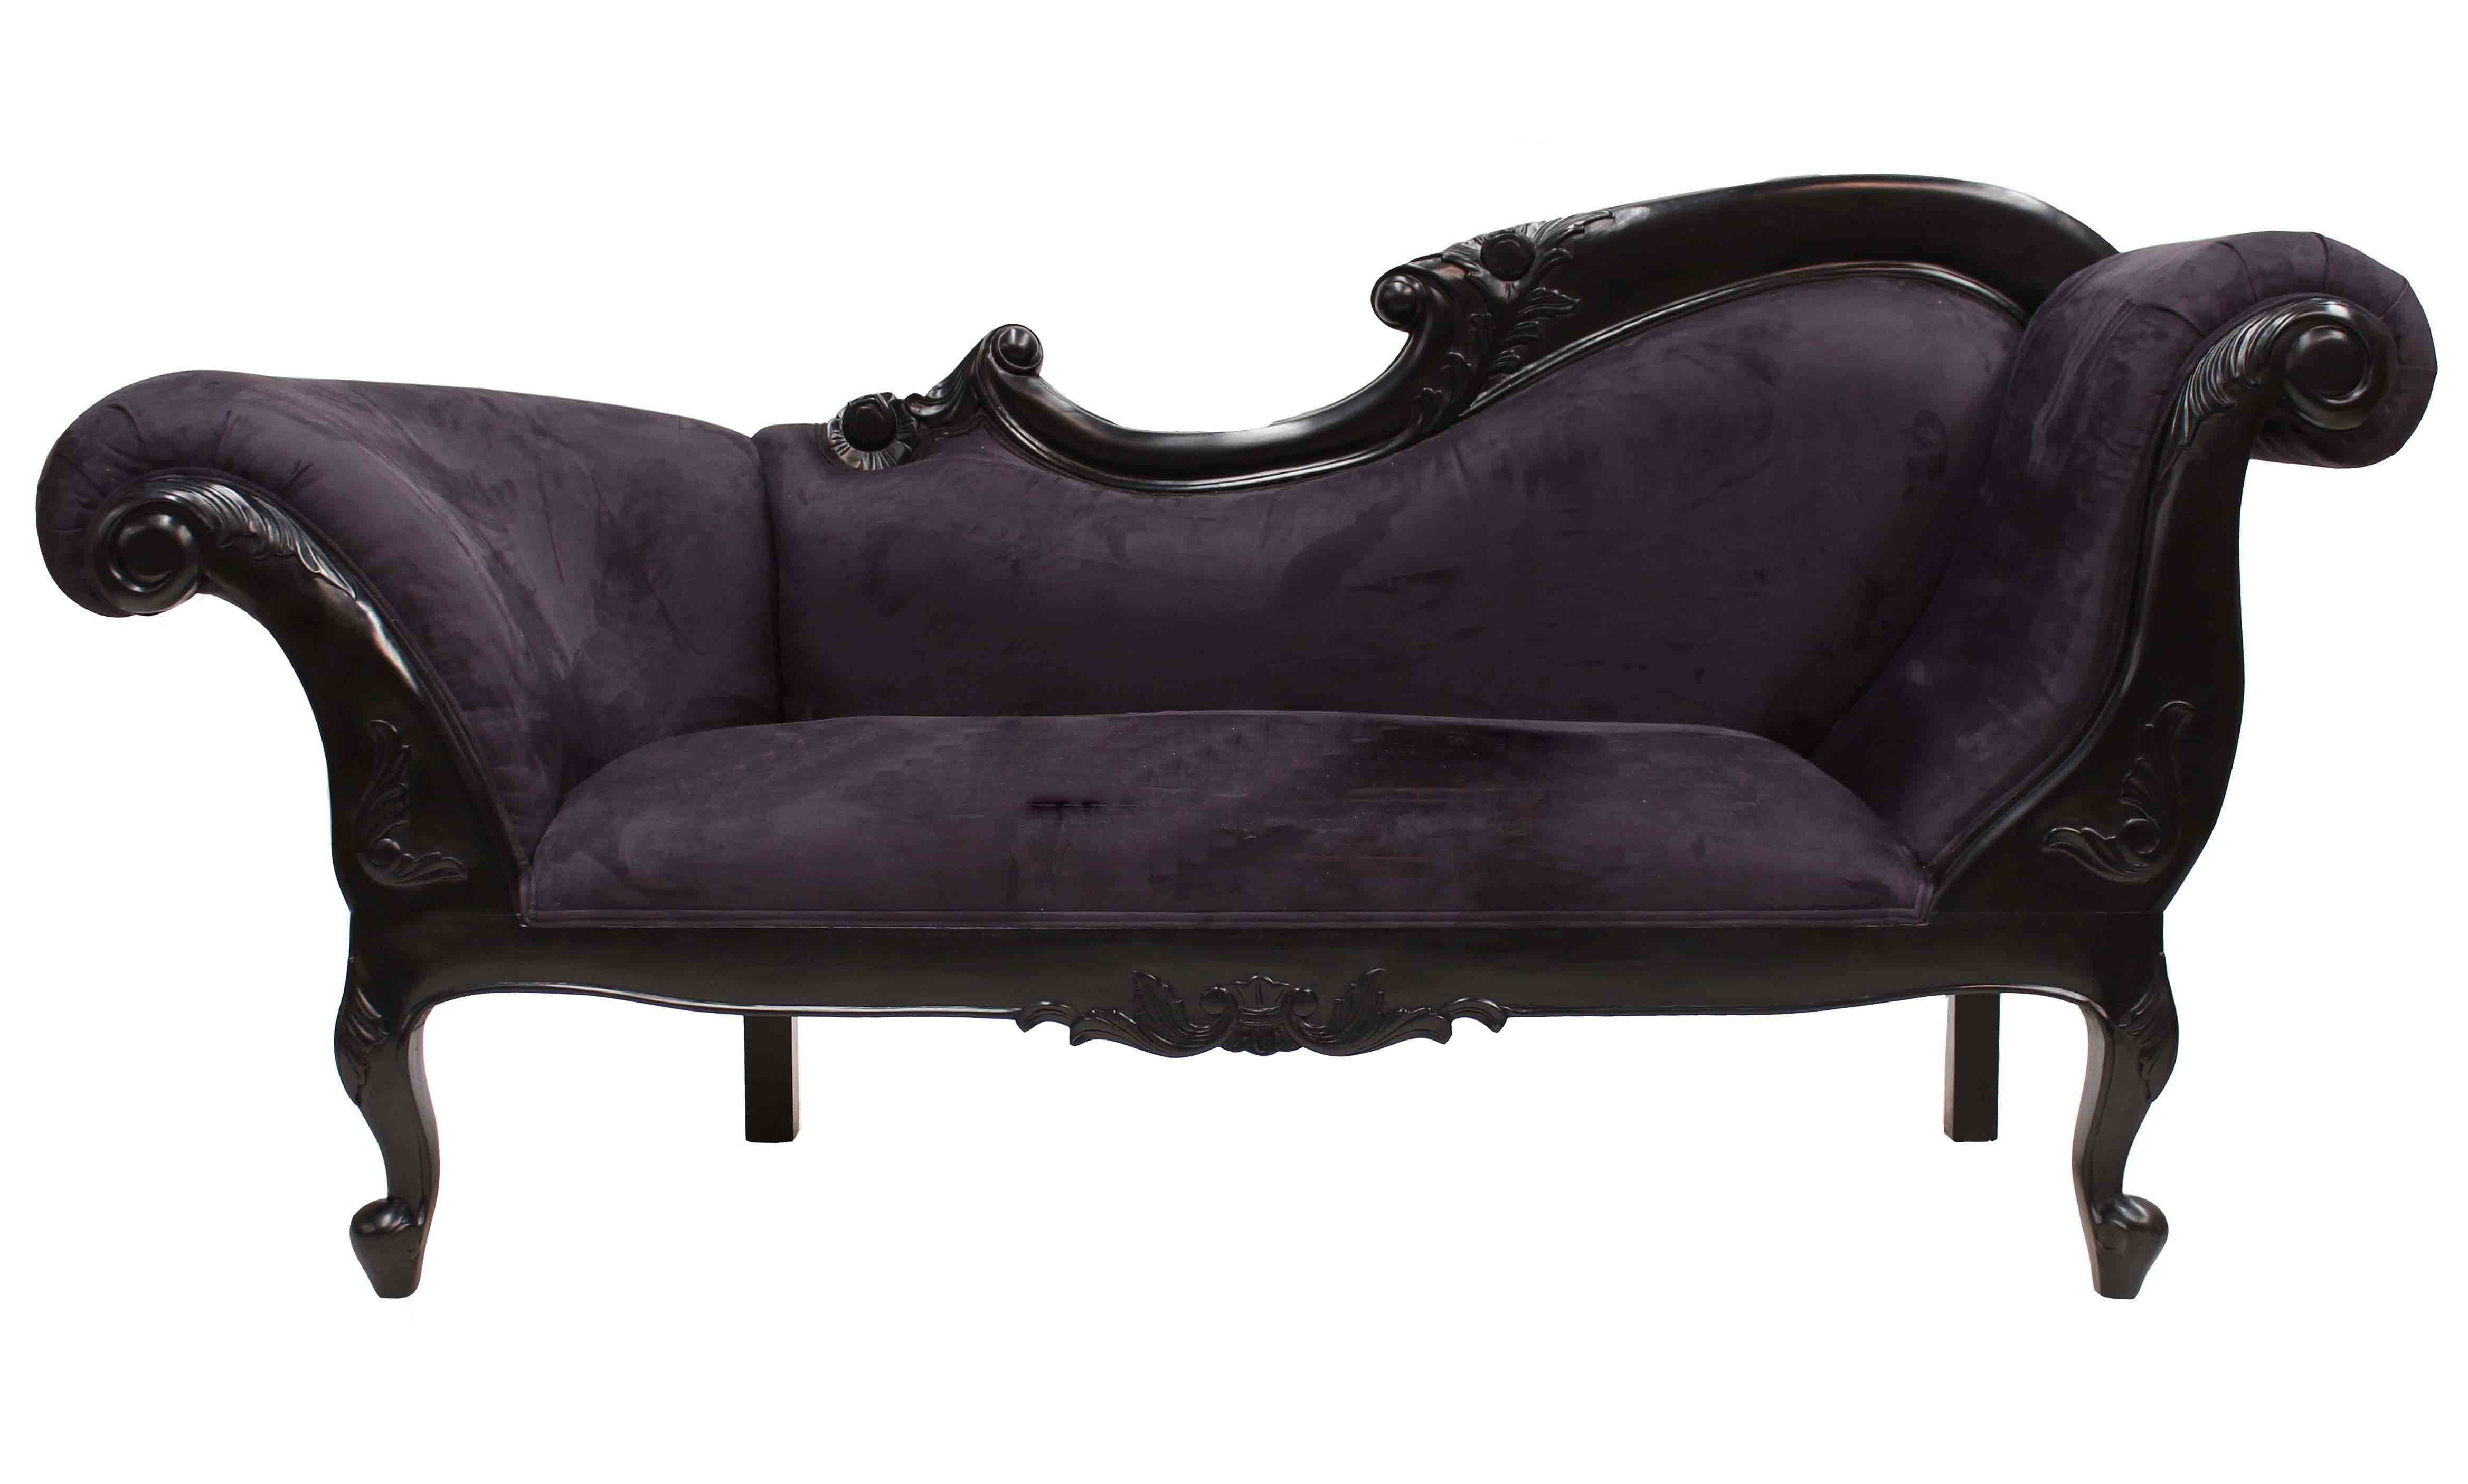 chaise intended interior lounge for sale luxury sofa pink velvet